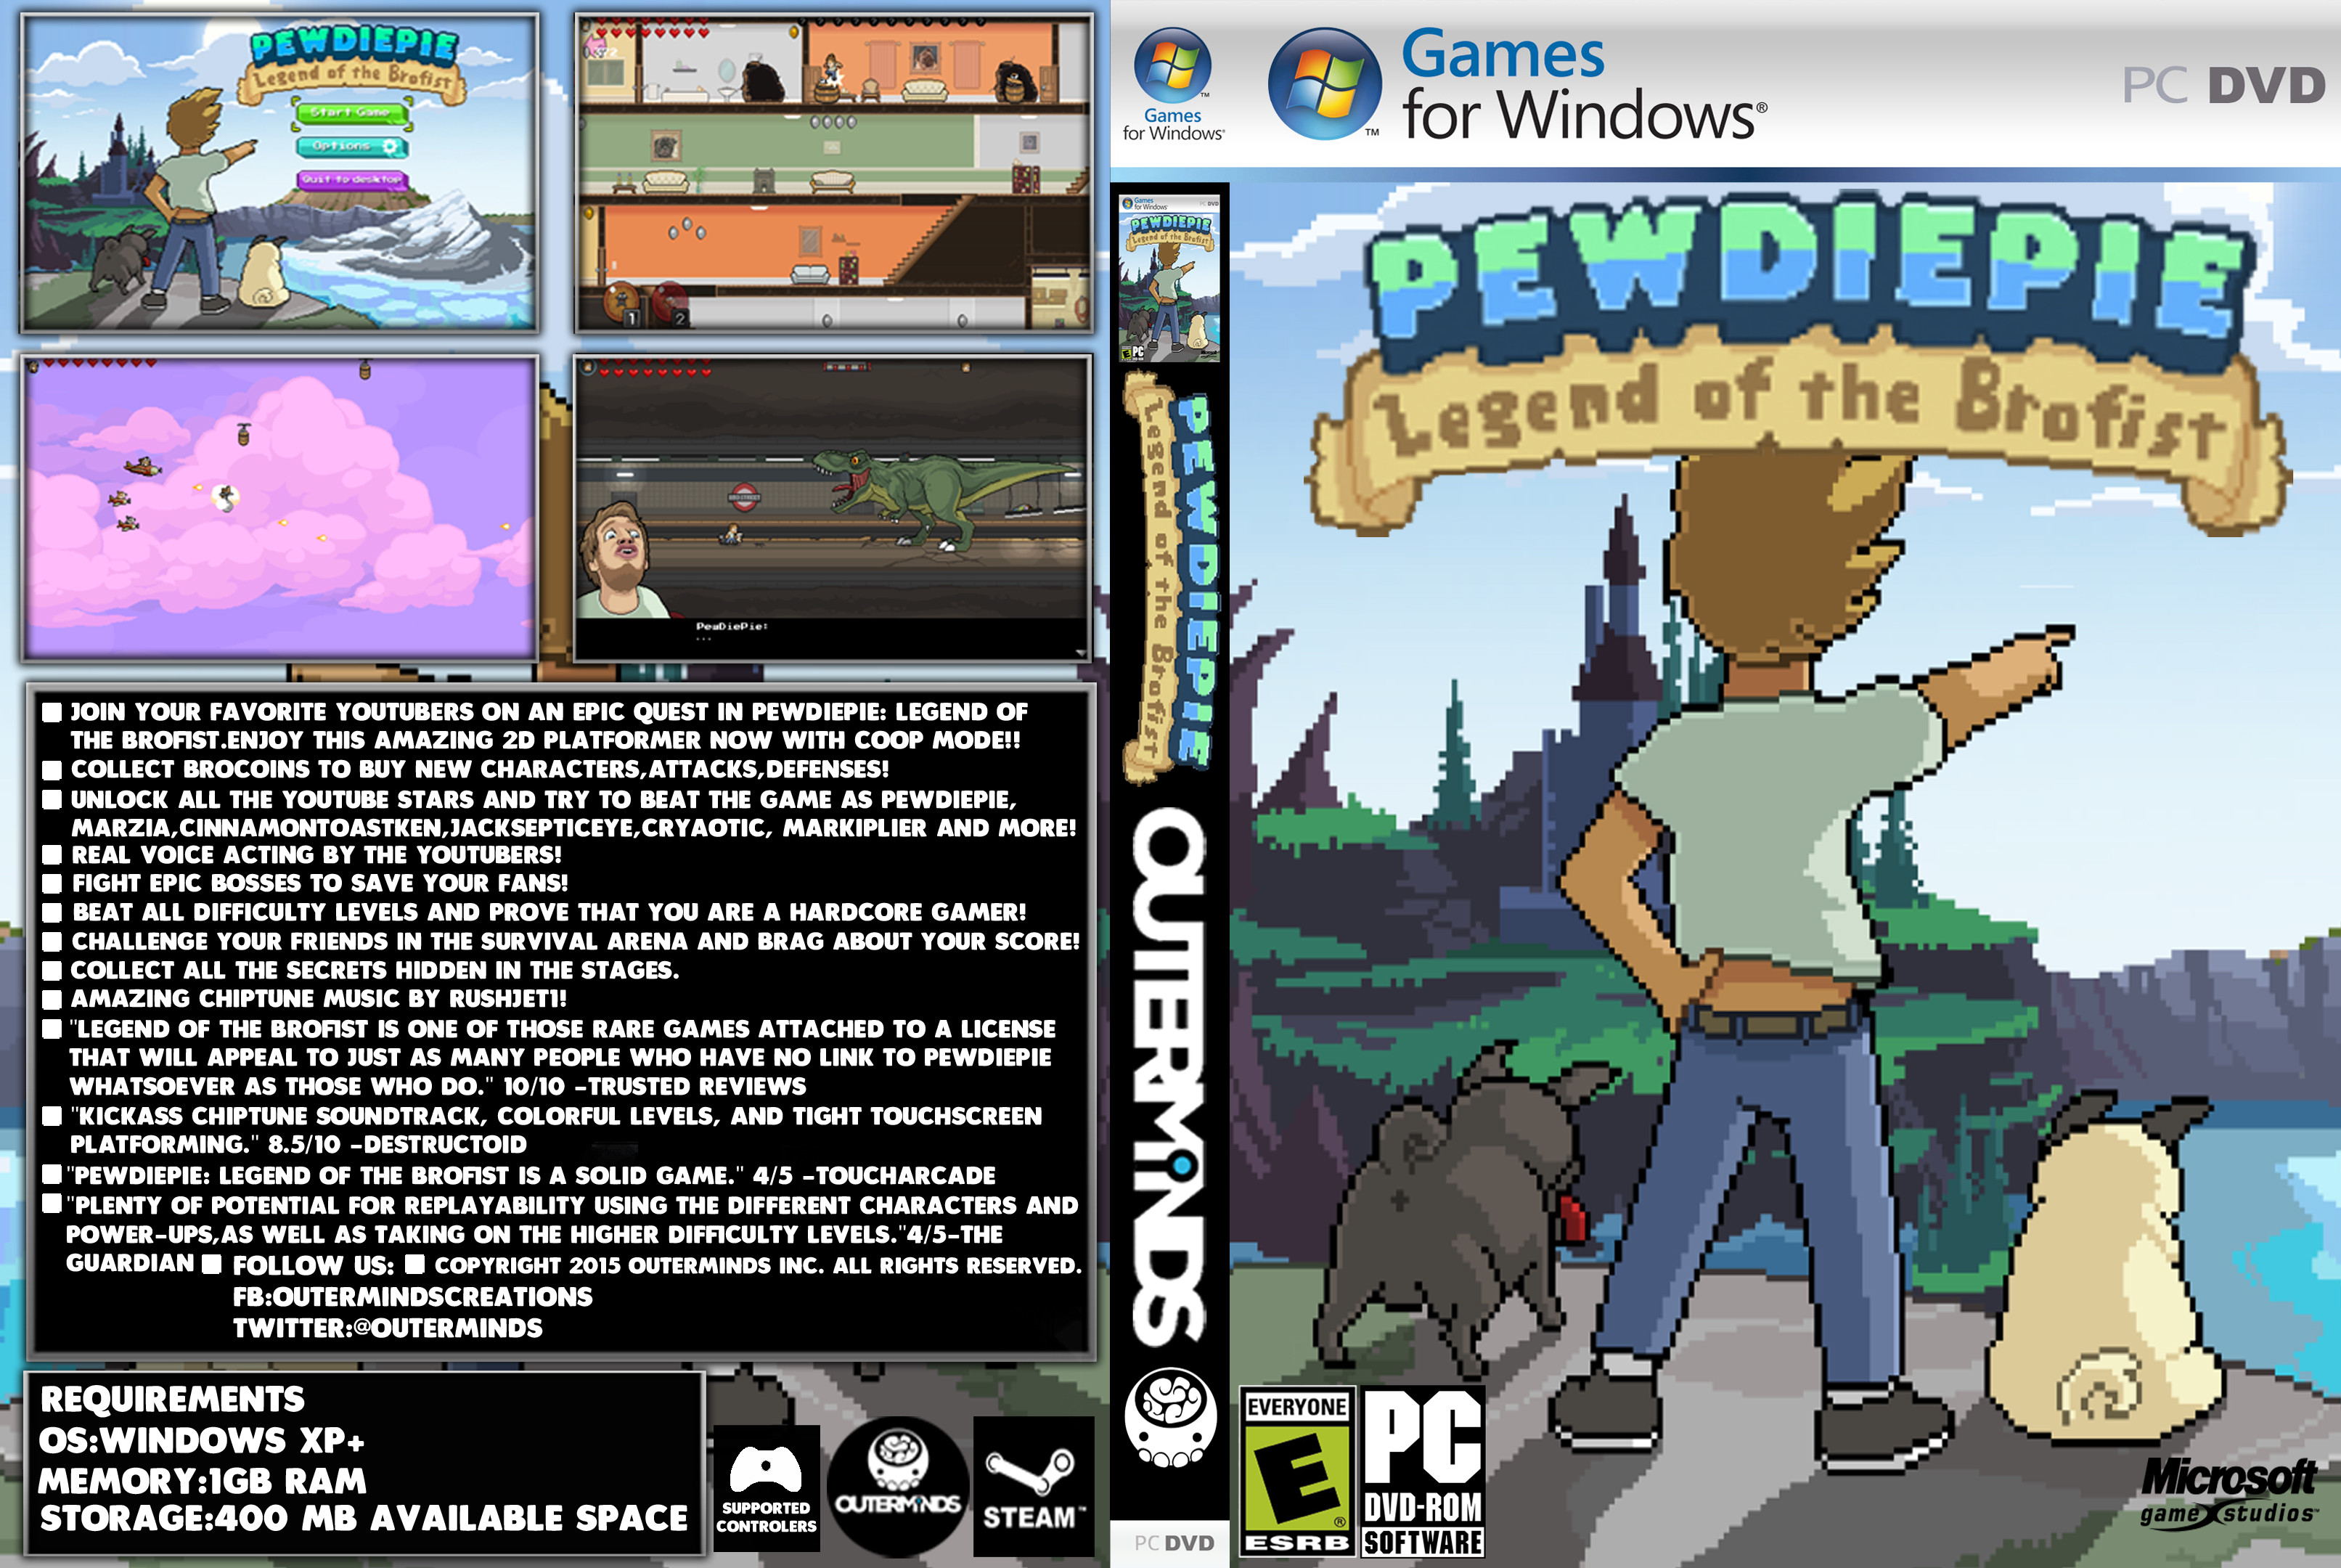 … PewDiePie:Legend Of The Brofist PC Windows Cover by apolopx